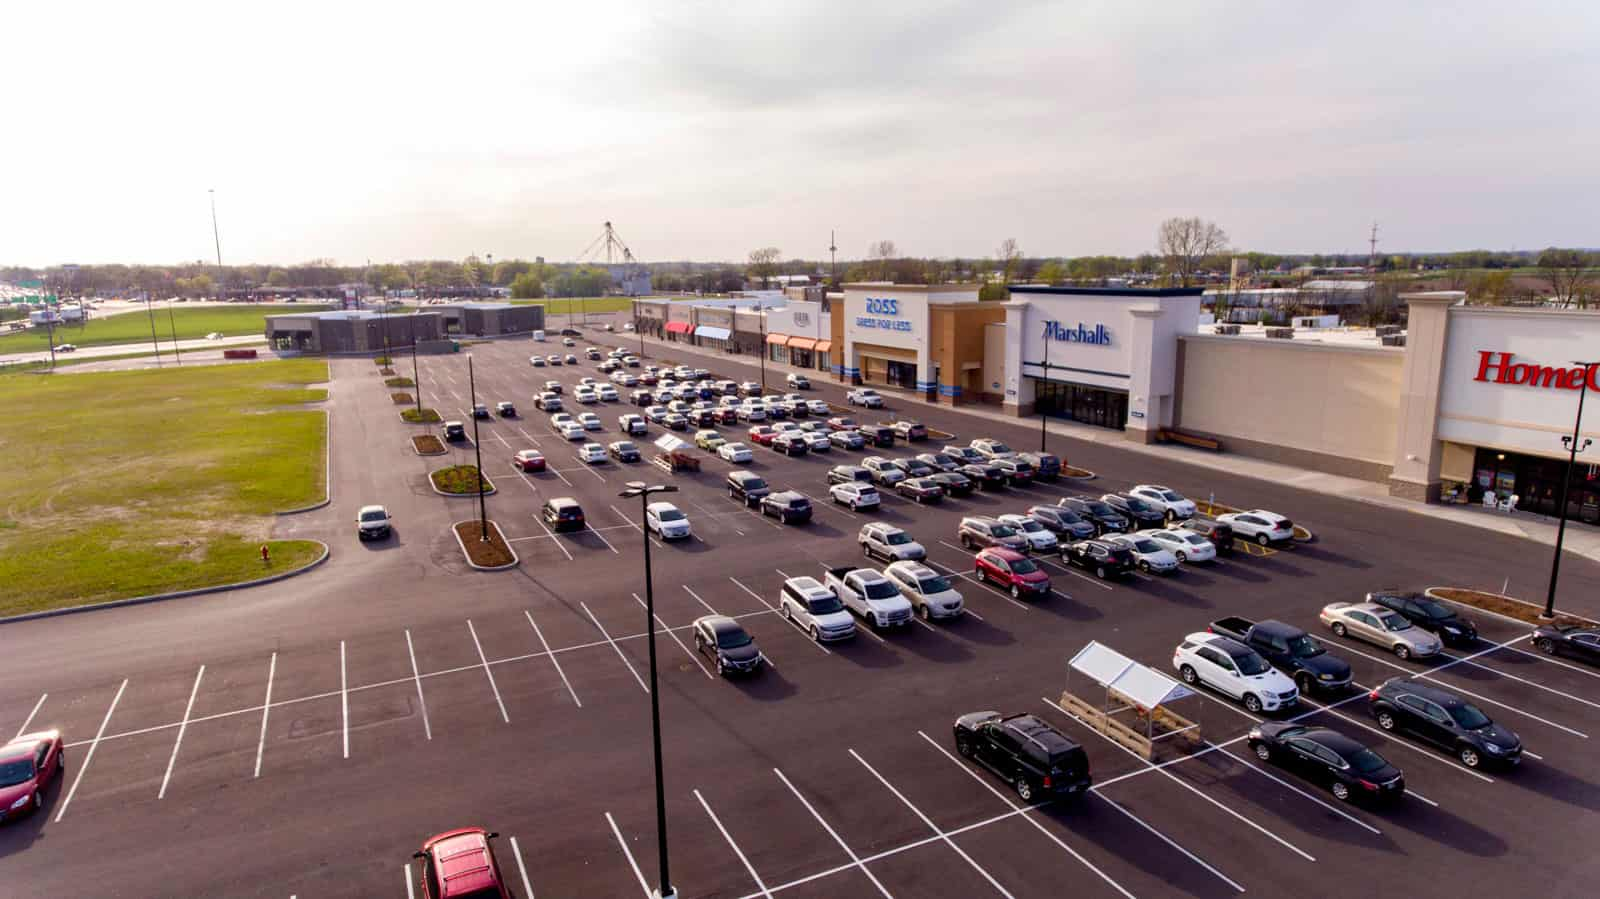 commercial real estate shopping plaza aerial photo in Missouri